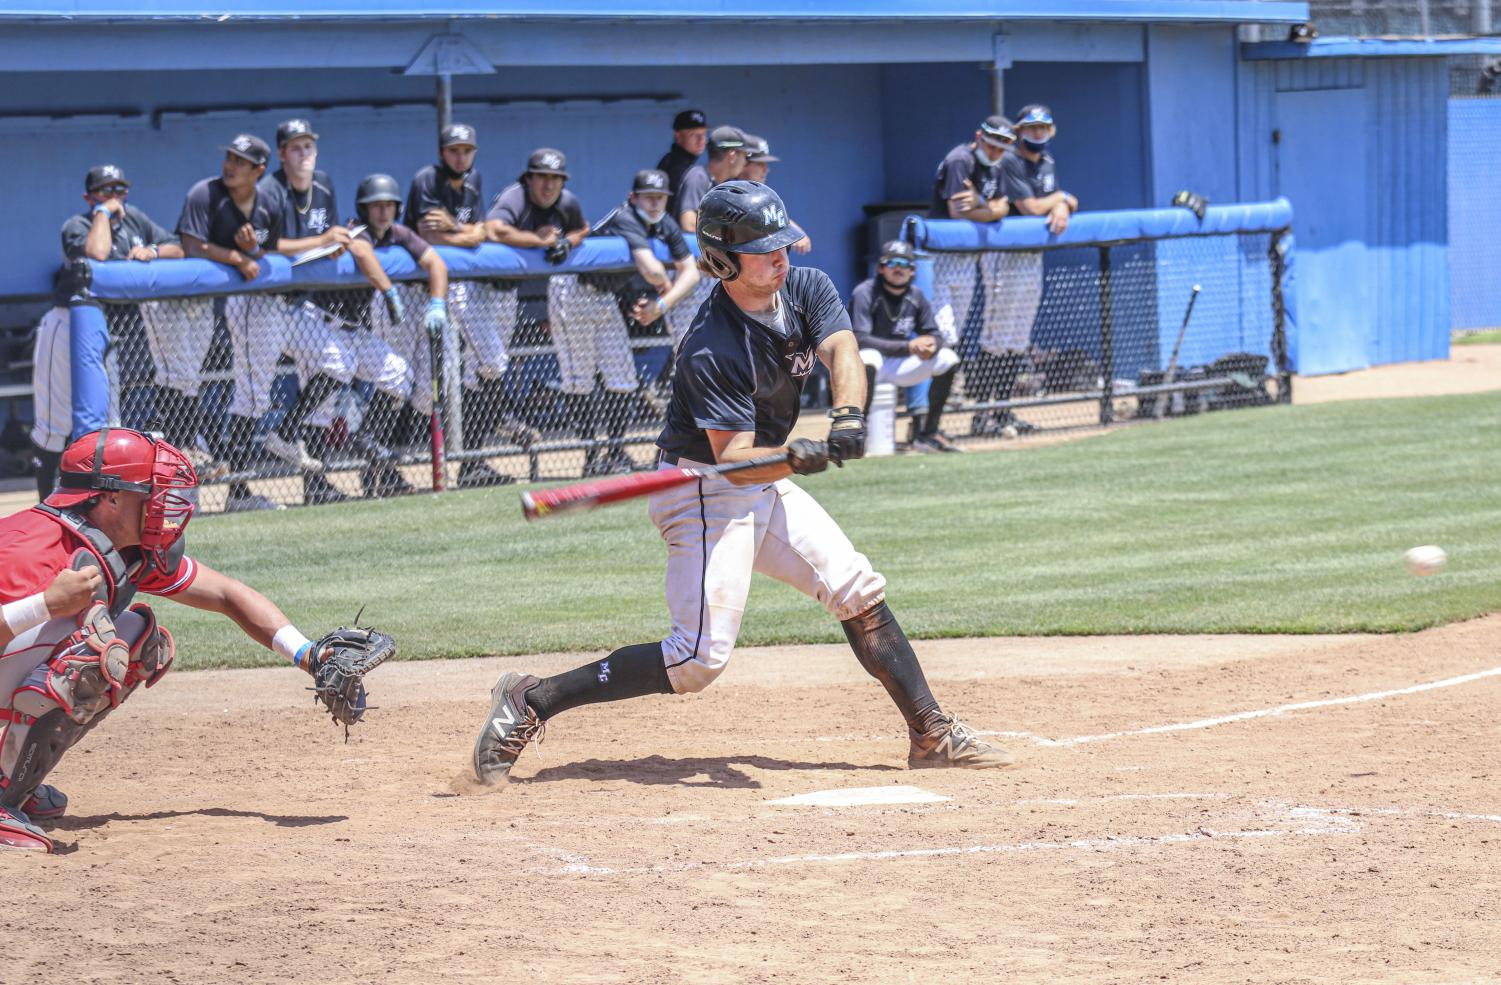 Moorpark's freshman catcher Robert Rehman swings at a pitch during the Raider's home game against Bakersfield College on Saturday, May 8, 2021.